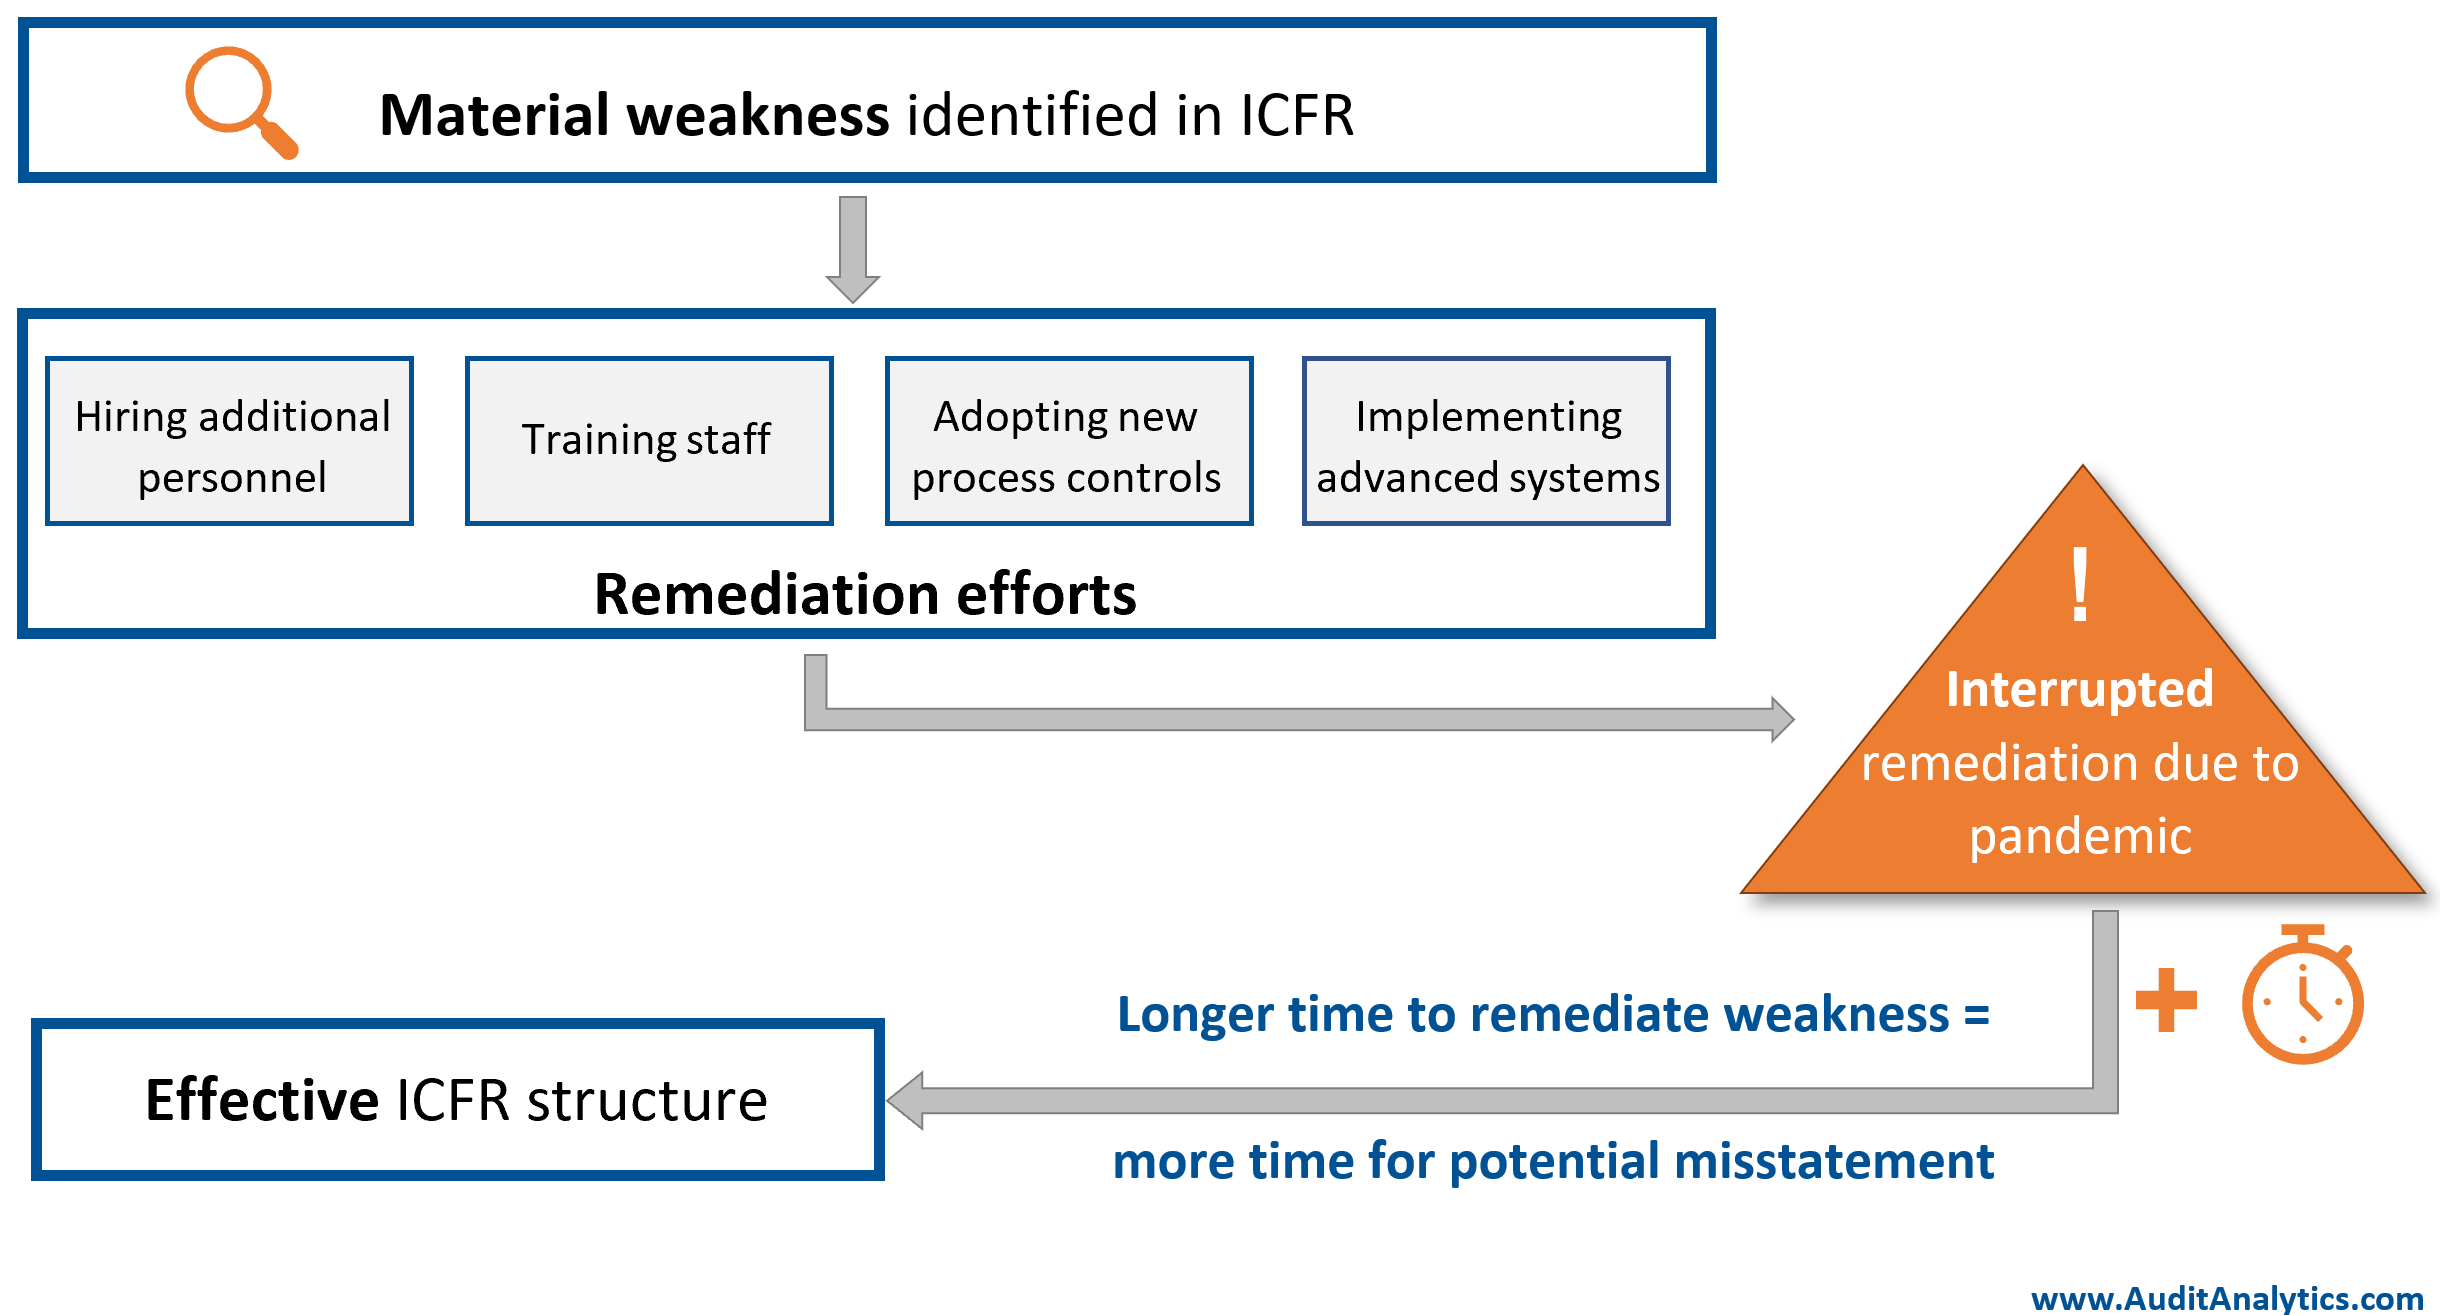 Internal control weakness remediation during pandemic